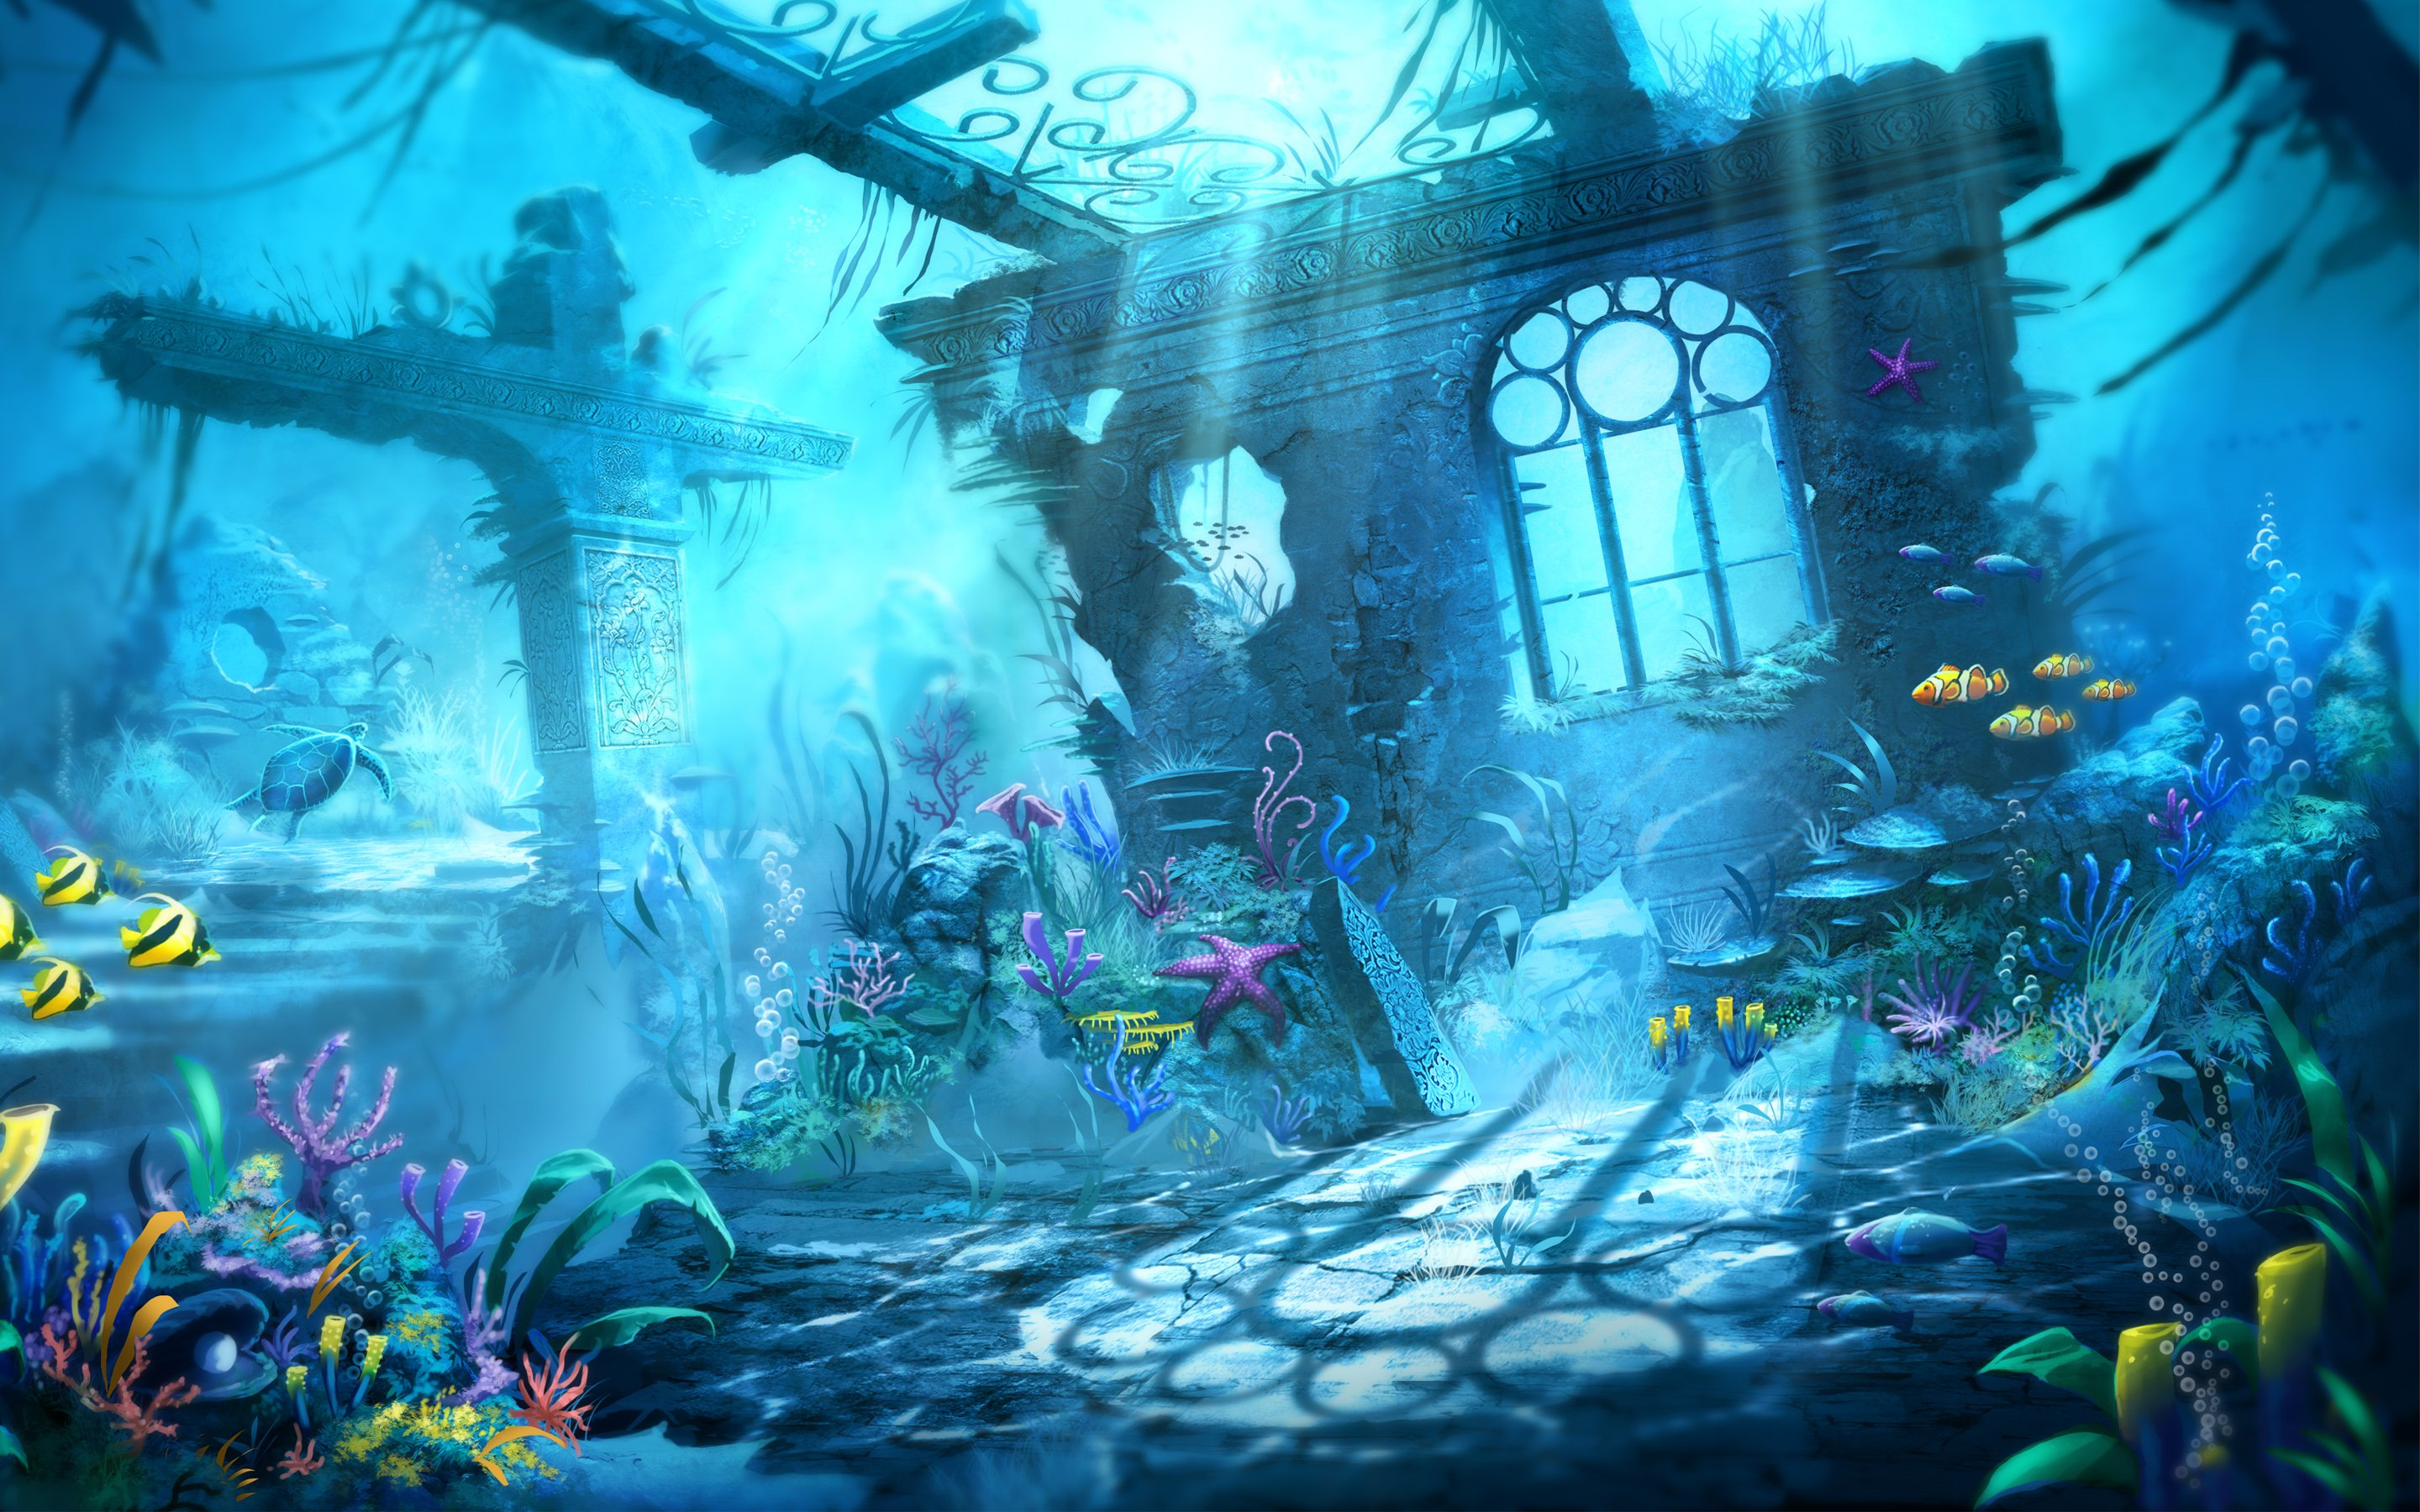 Trine Underwater Scene Wallpapers HD Wallpapers 2880x1800